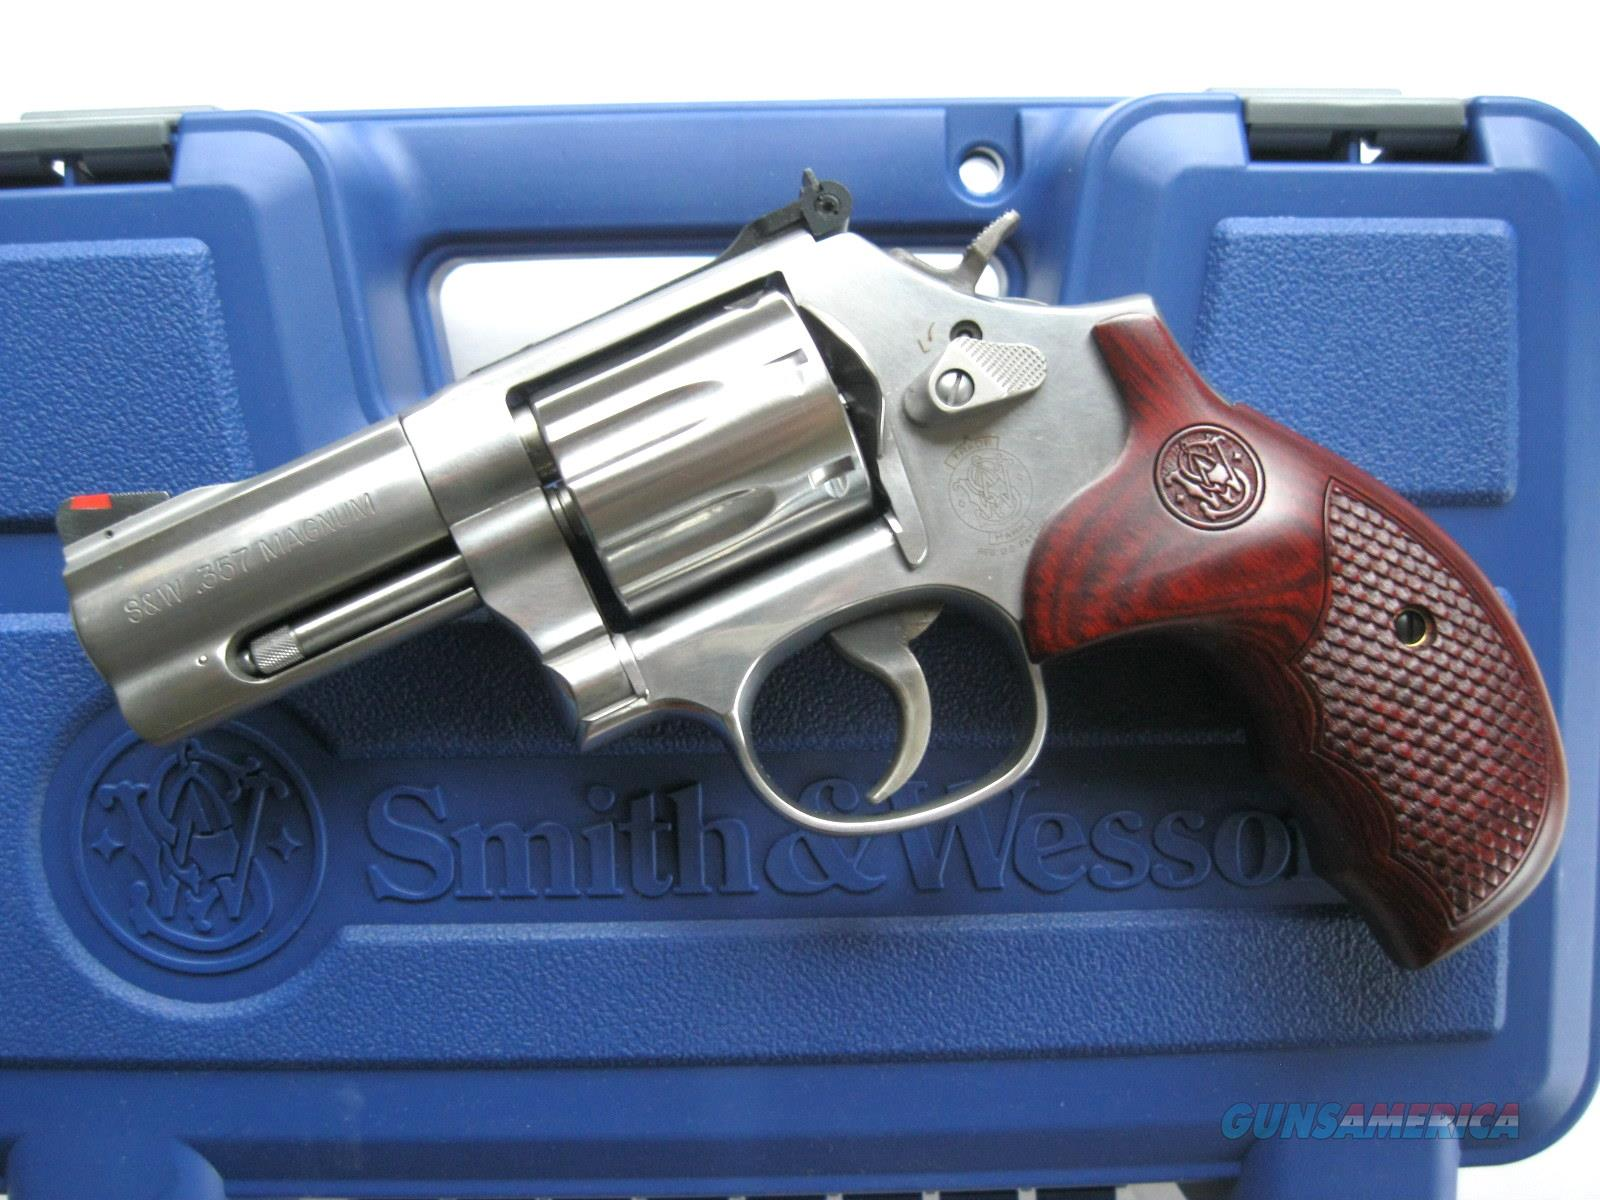 "Smith & Wesson 686 Plus Deluxe 3"" LIMITED 150713 *NEW*  Guns > Pistols > Smith & Wesson Revolvers > Full Frame Revolver"